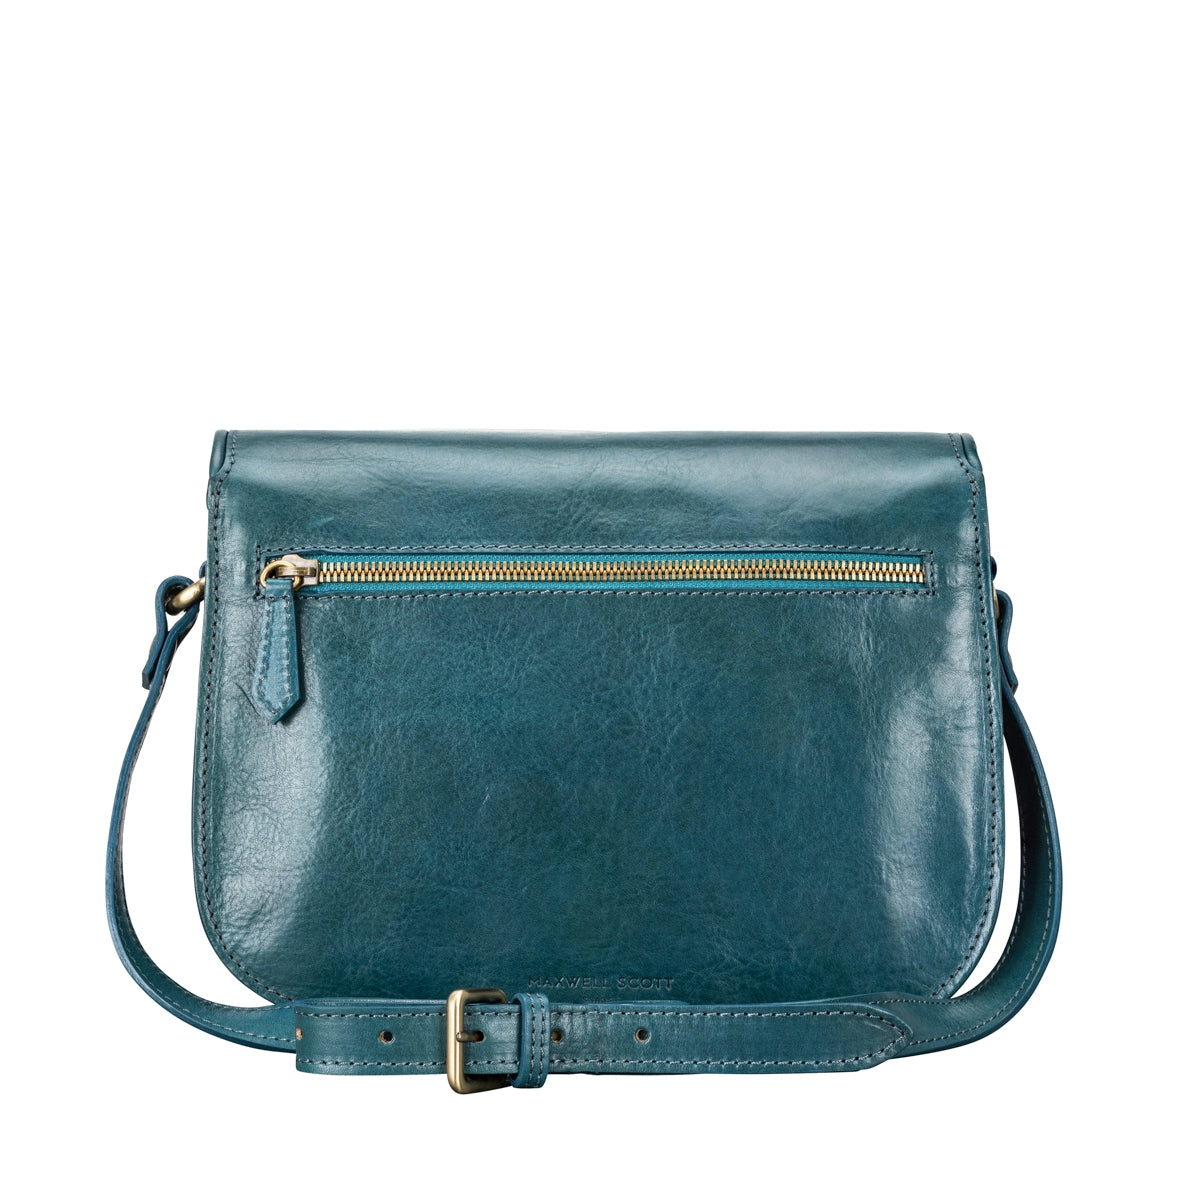 Image 4 of the 'MedollaM' Petrol Leather Women's Saddle Bag